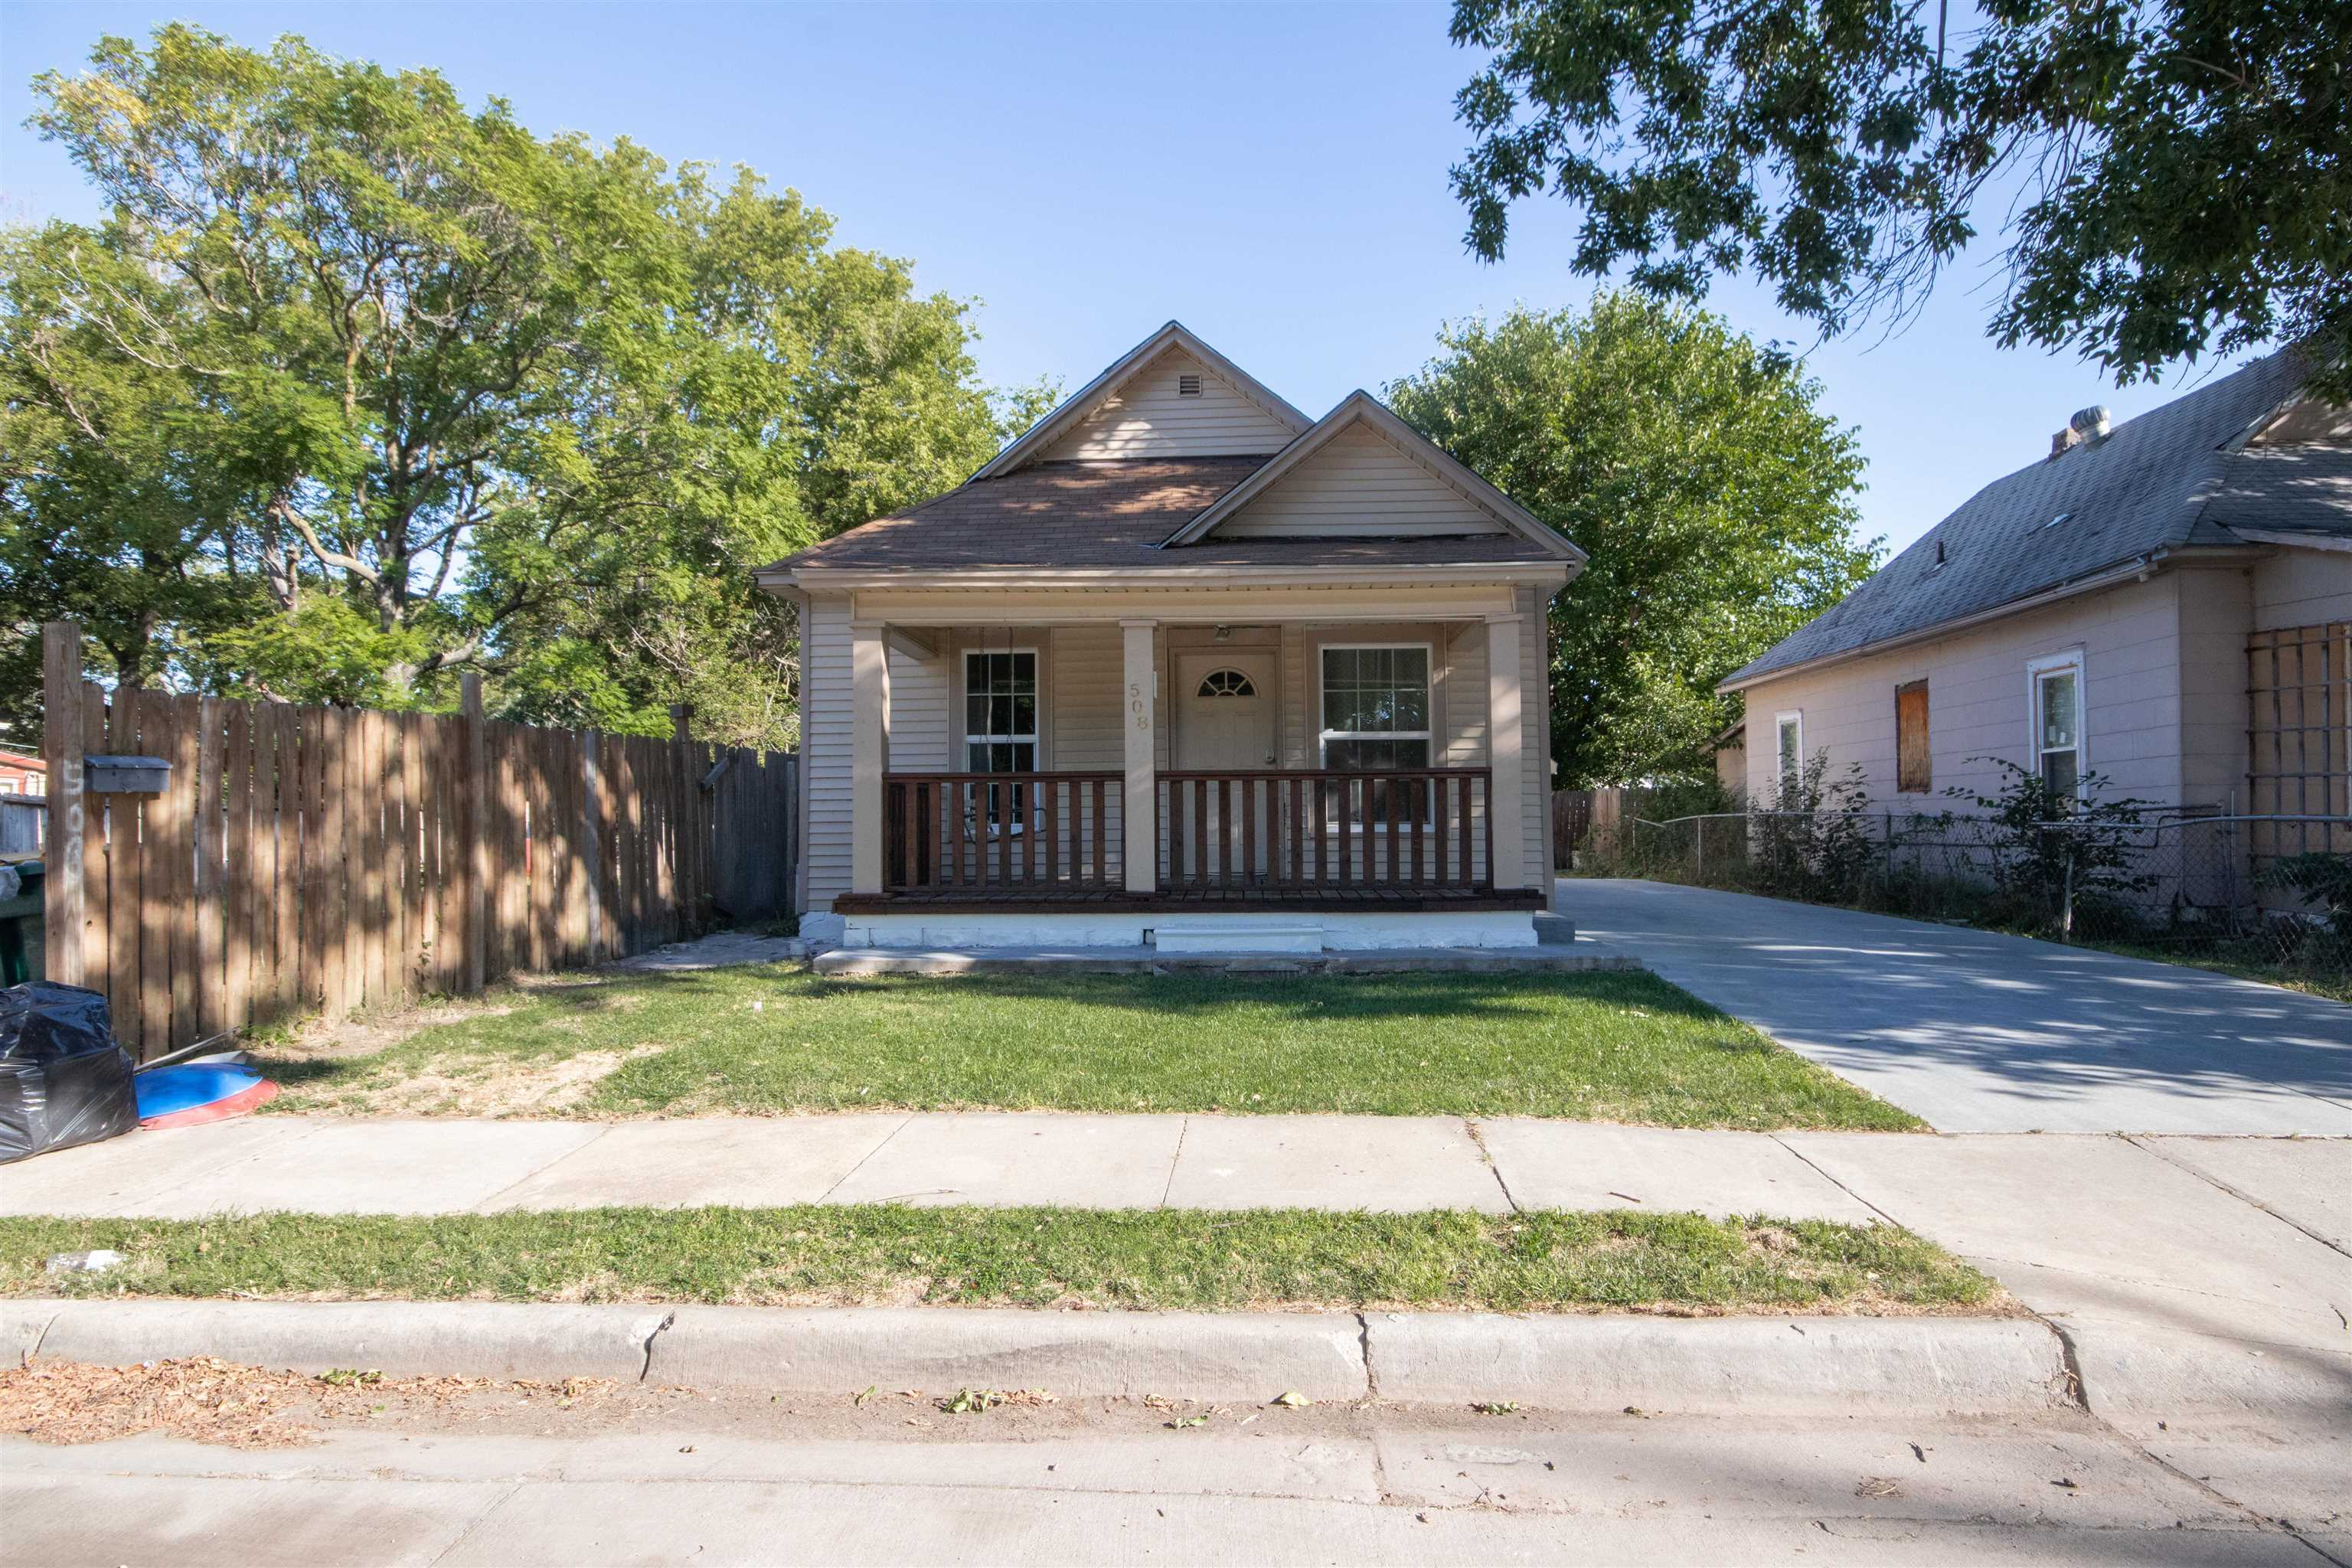 This 2 bedroom, 1 bathroom has been updated and is move-in ready! Great starter home centrally locat